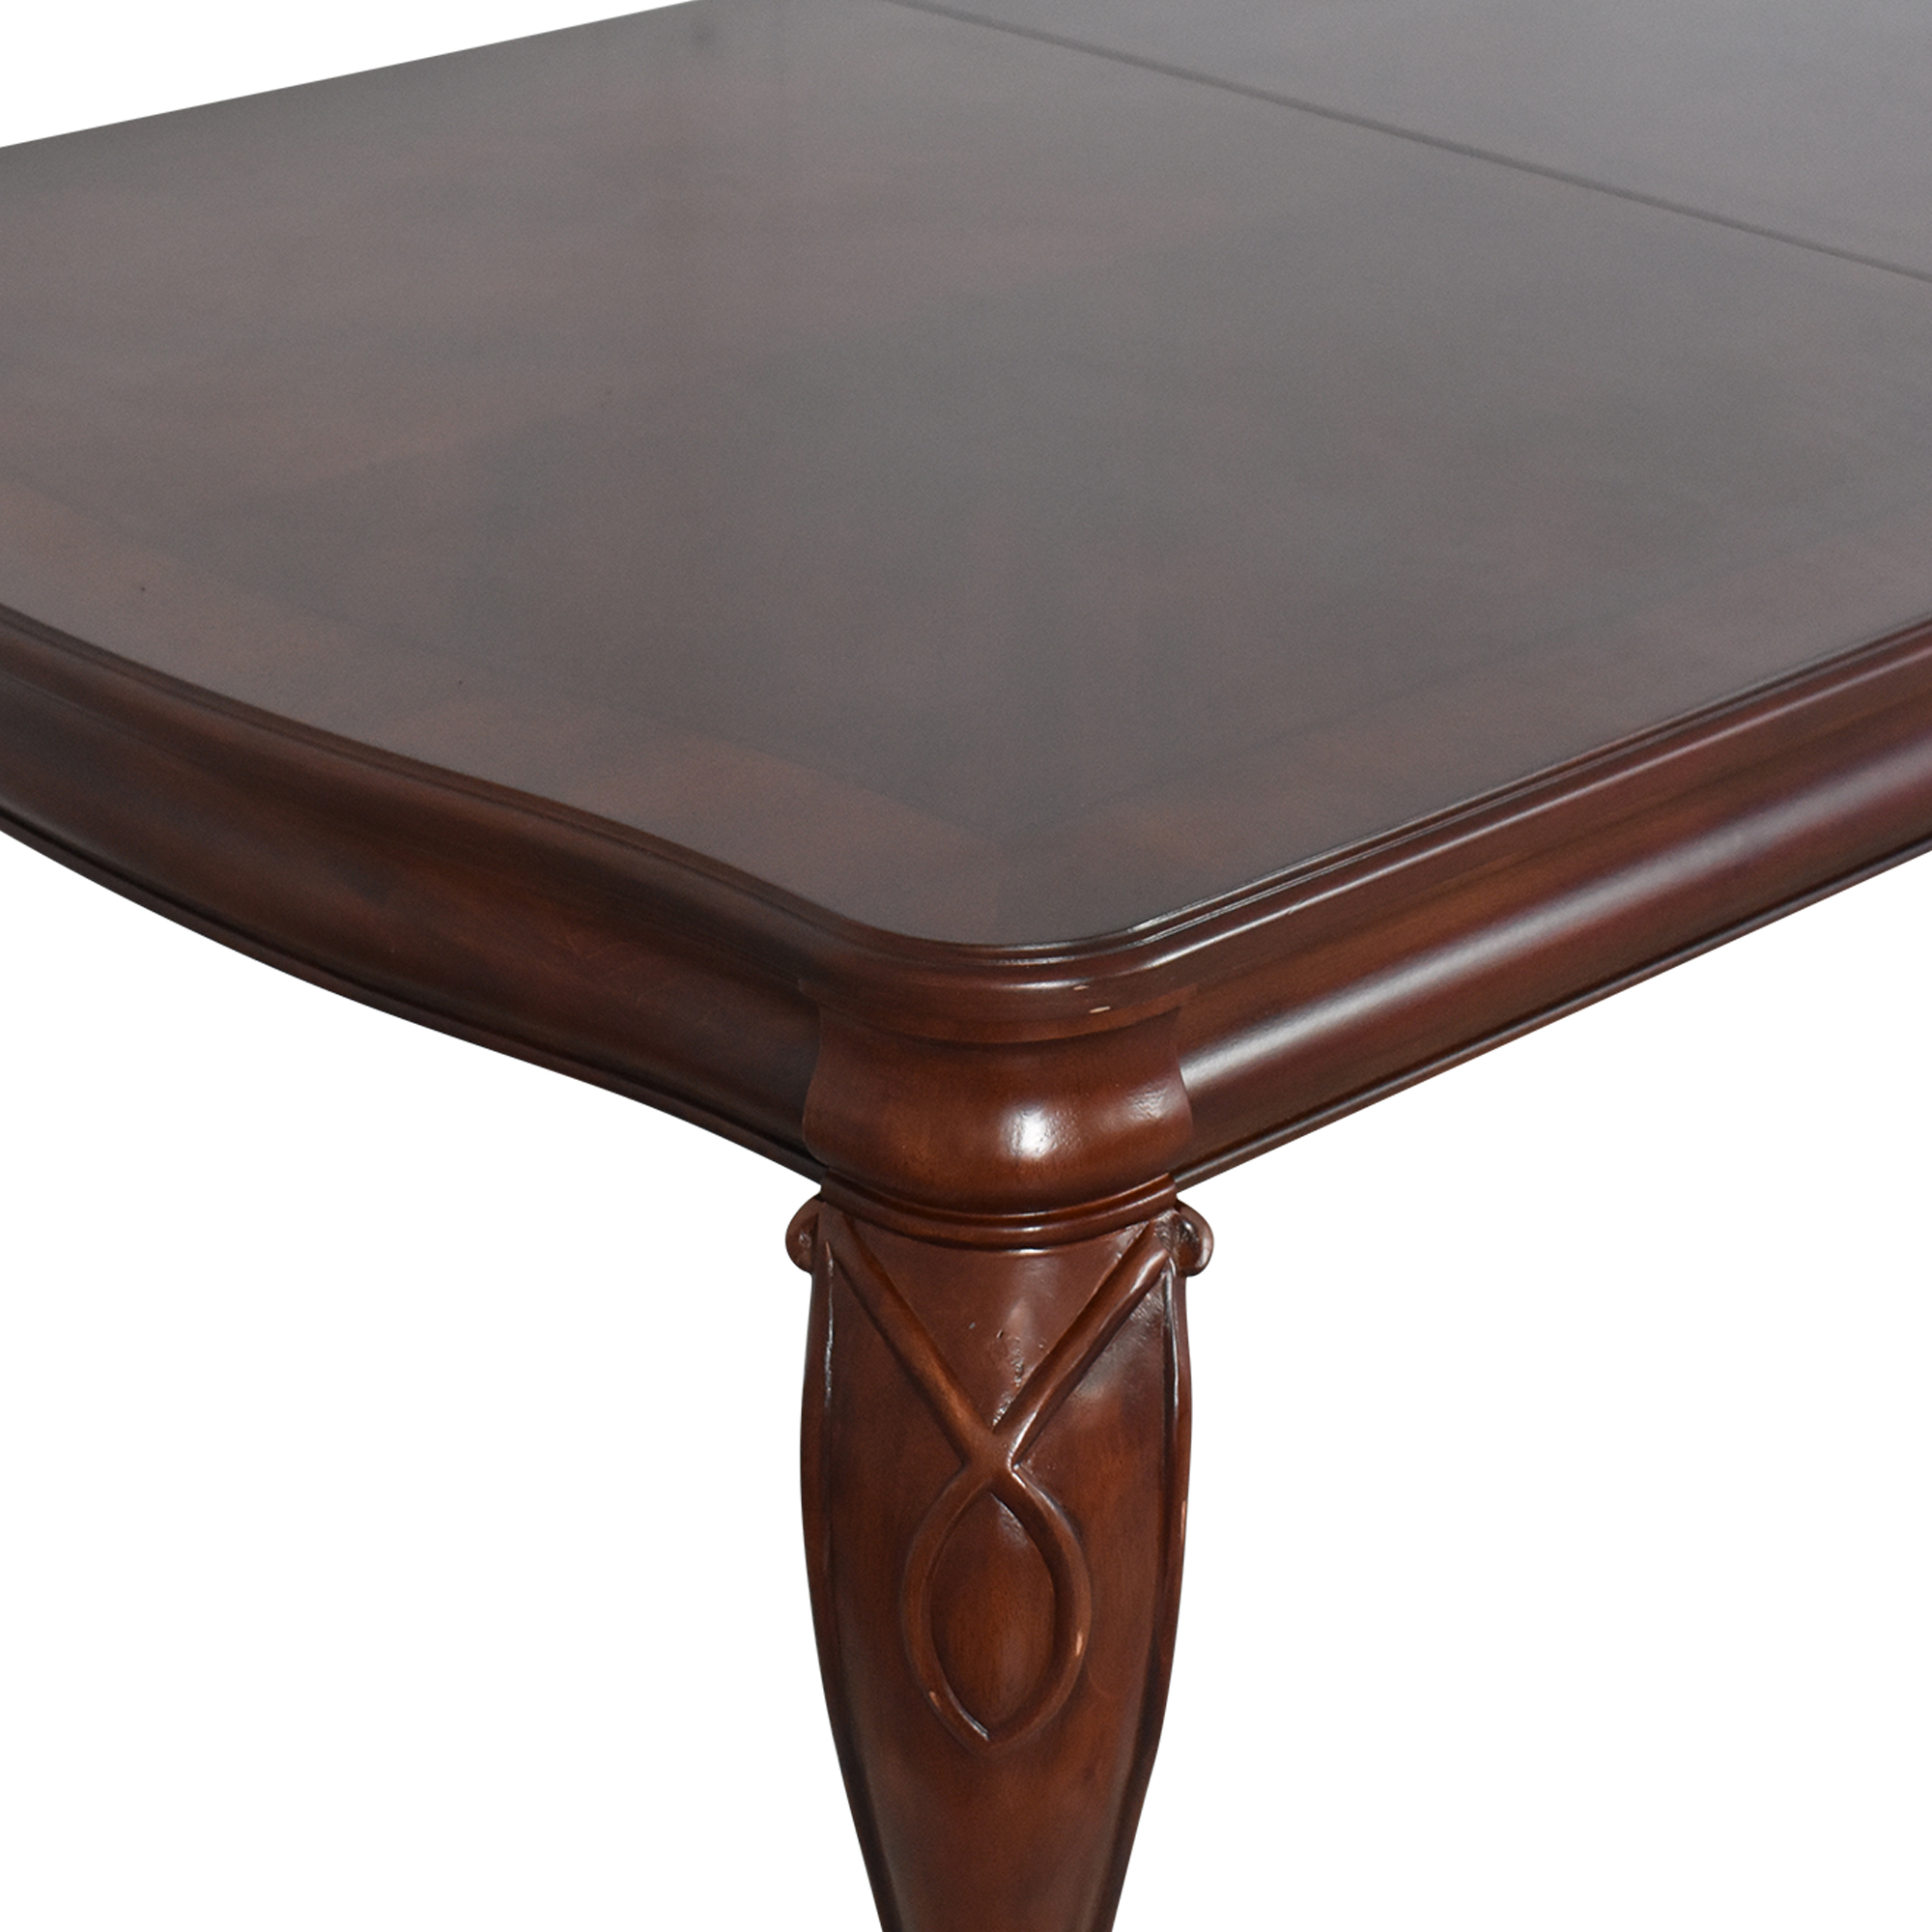 Macy's Macy's Bordeaux II Dining Table dimensions